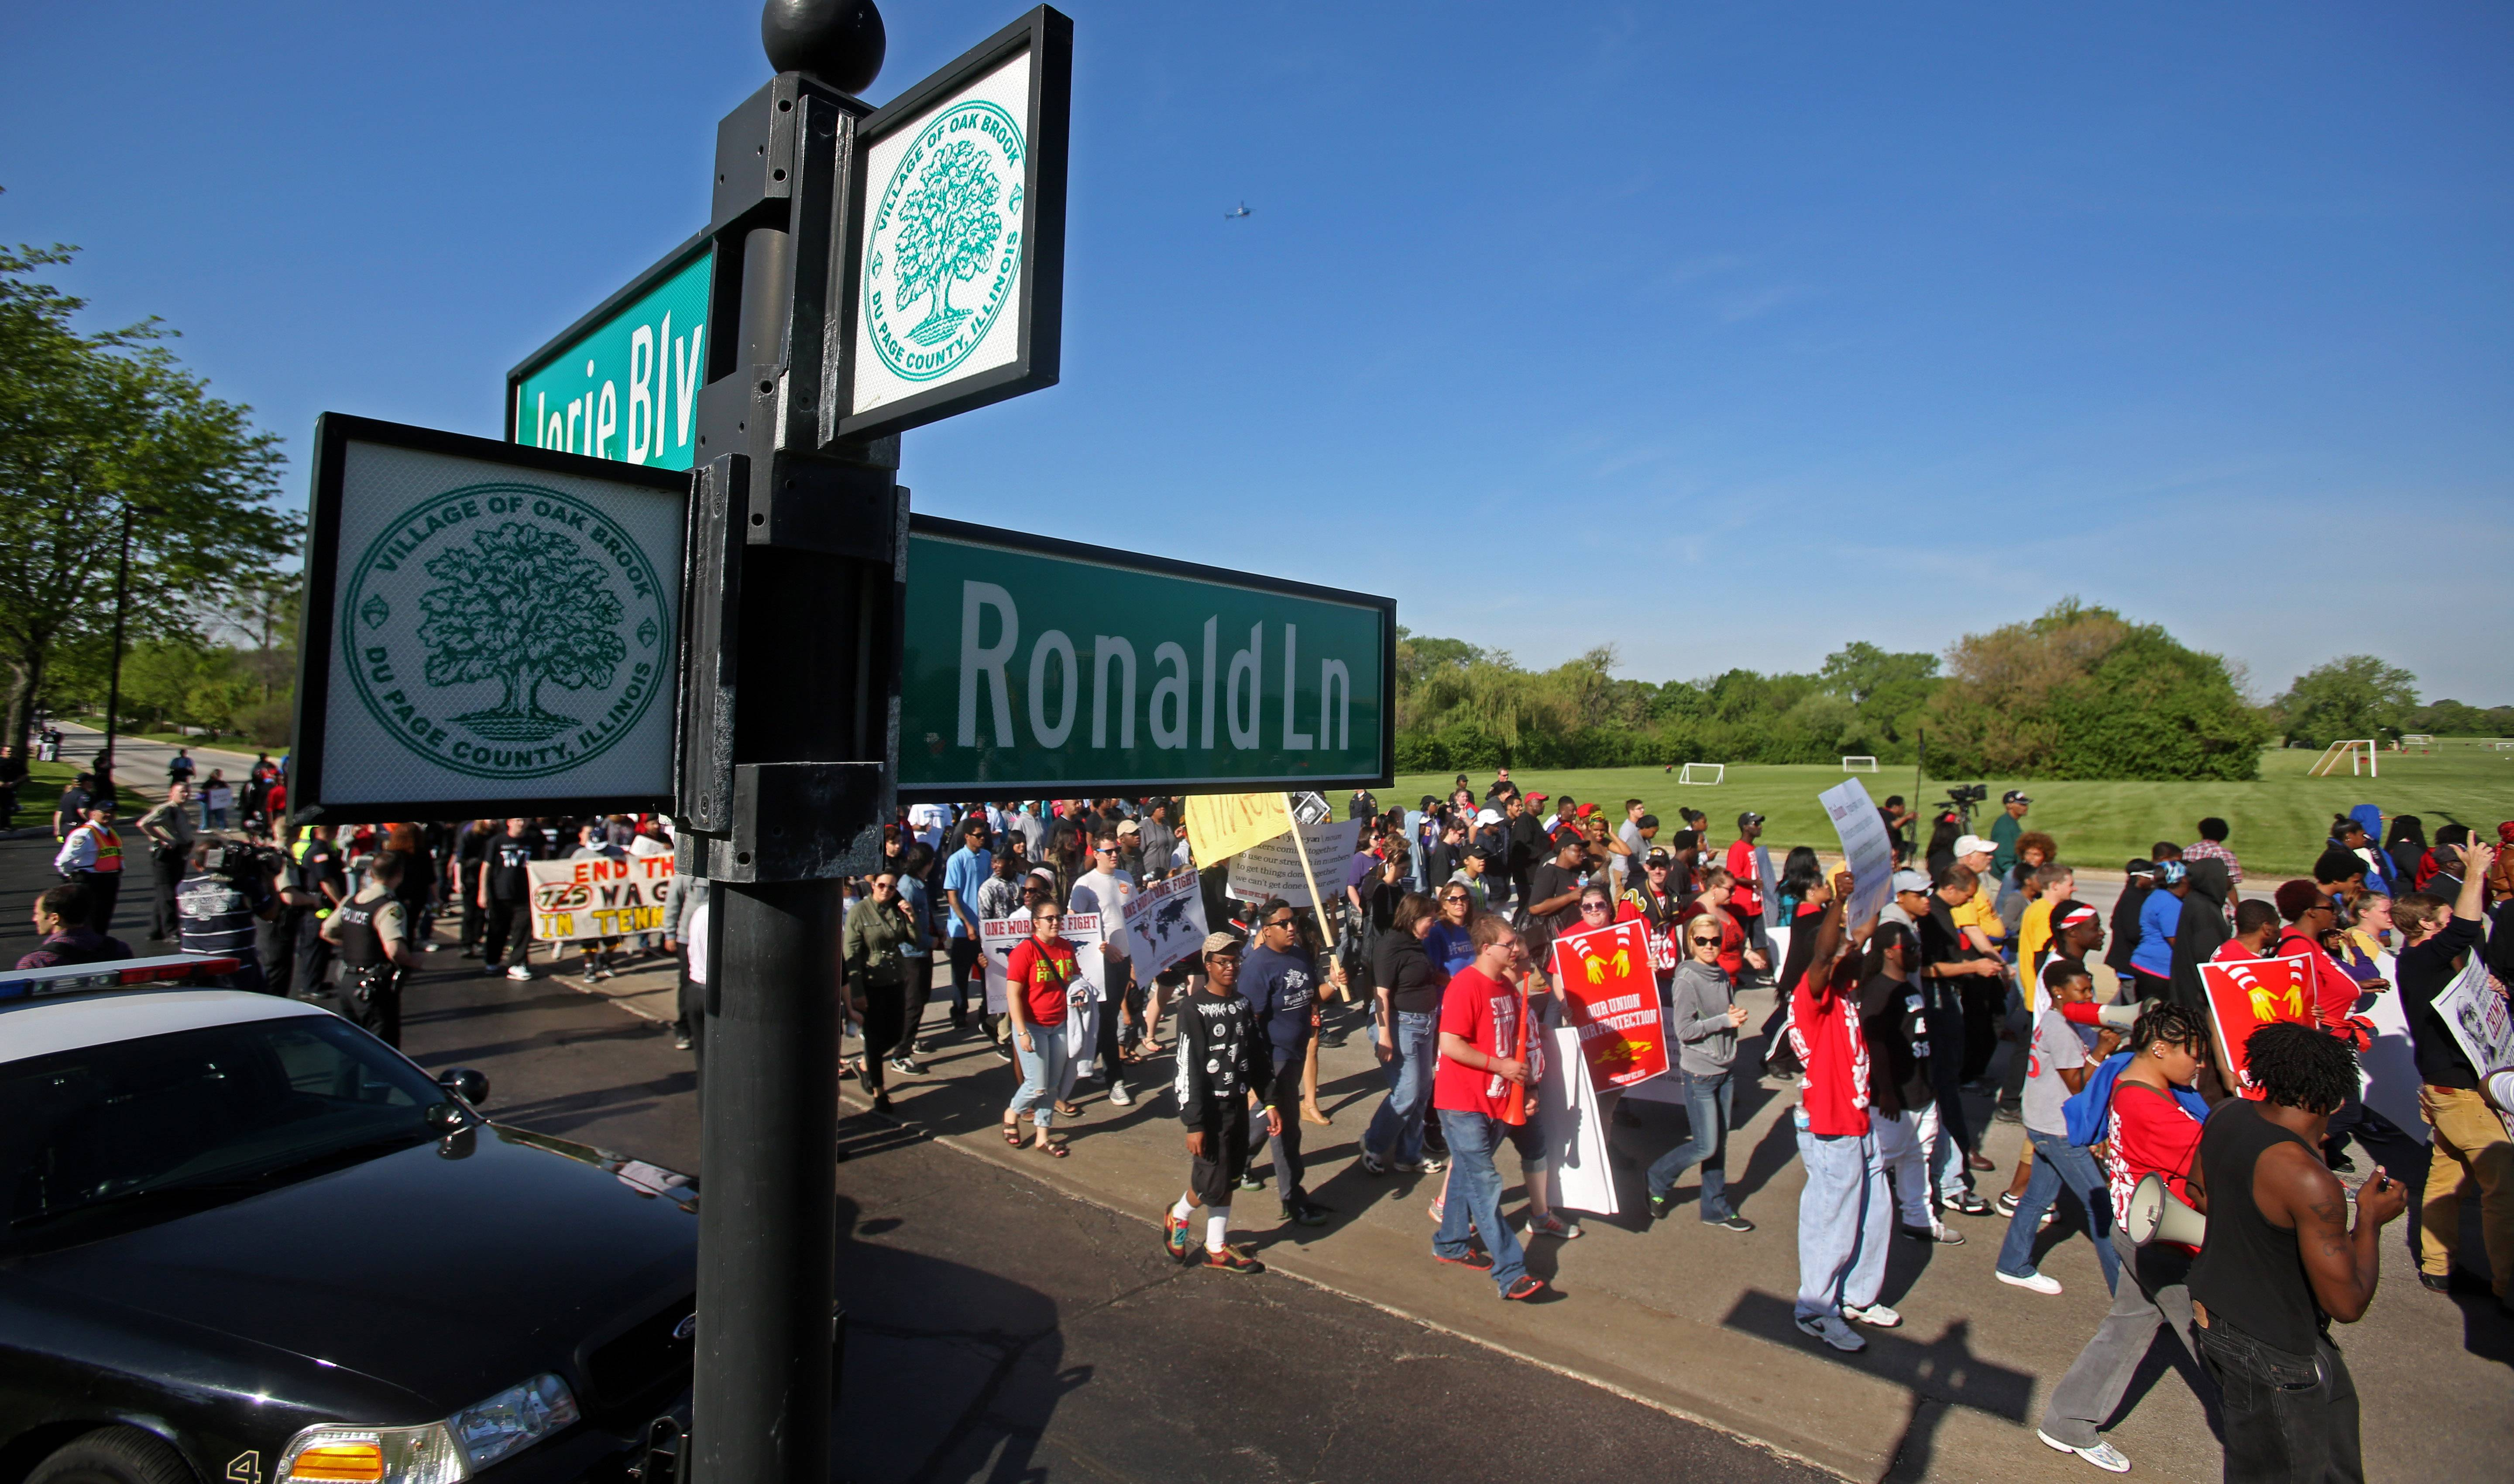 Protesters march along Jorie Boulevard during a demonstration for higher fast food wages outside McDonald's headquarters.